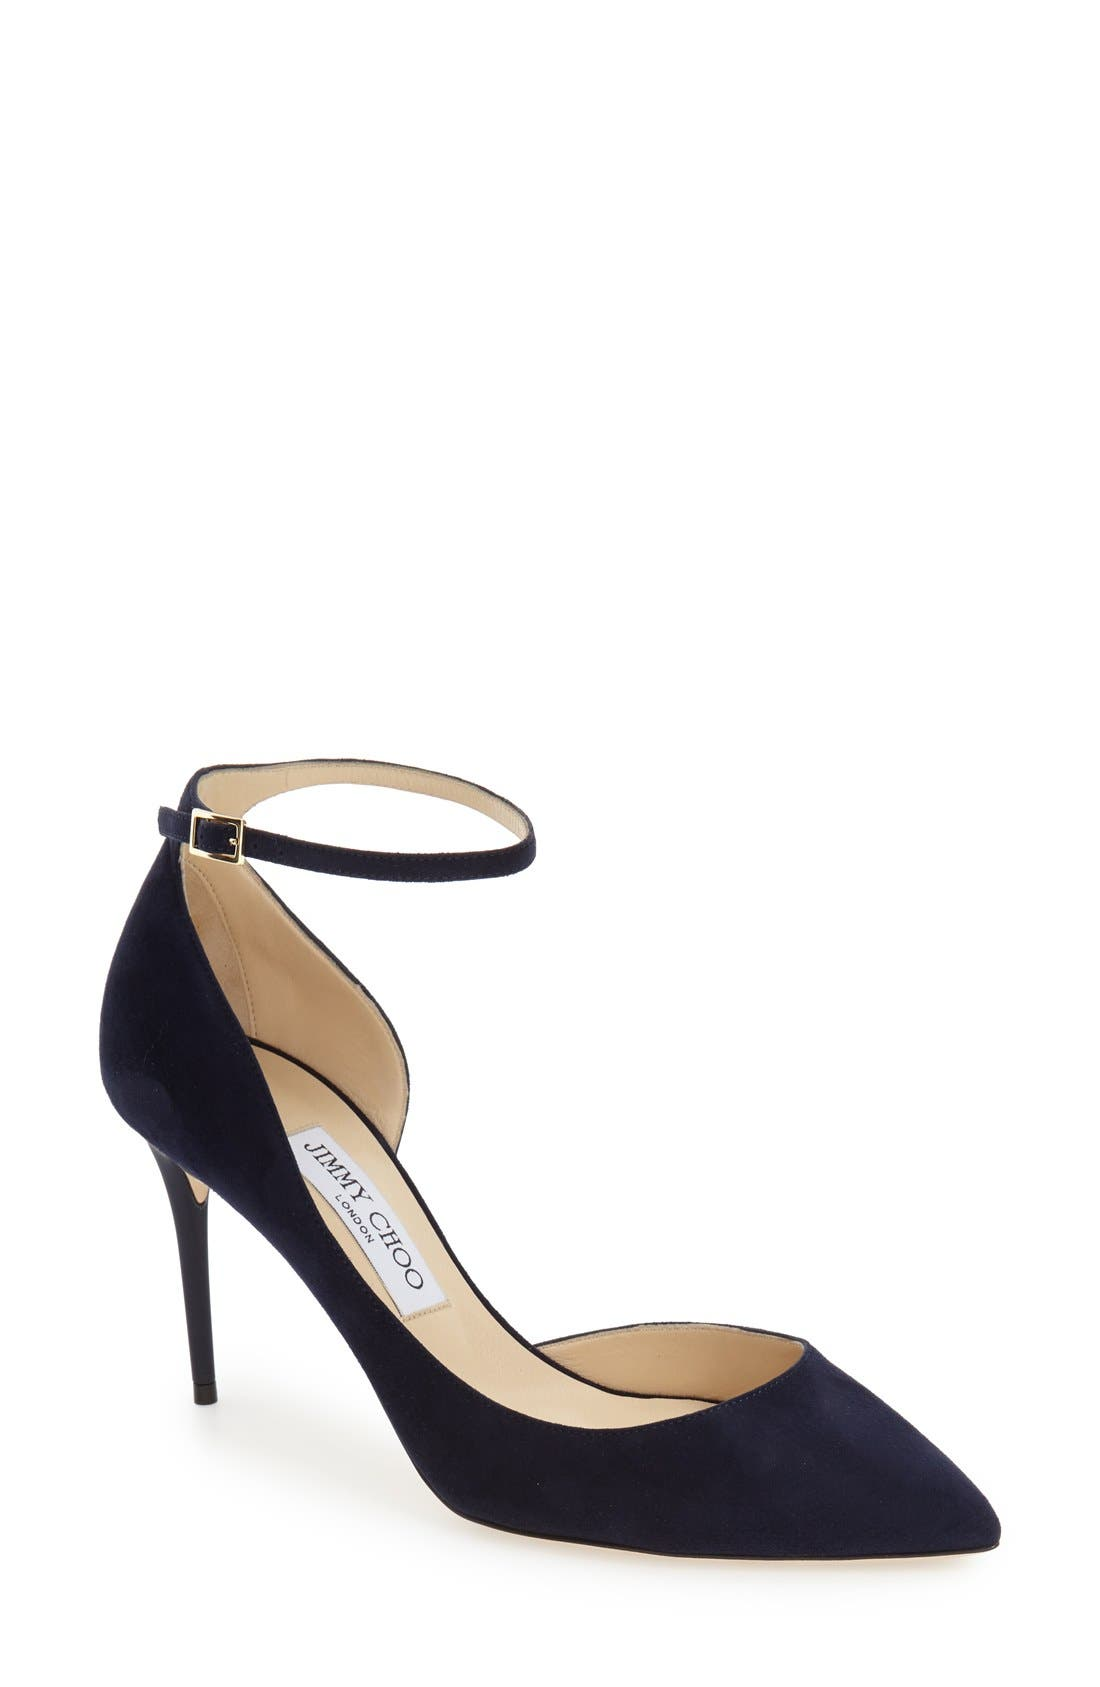 'Lucy' Half d'Orsay Pointy Toe Pump,                             Main thumbnail 1, color,